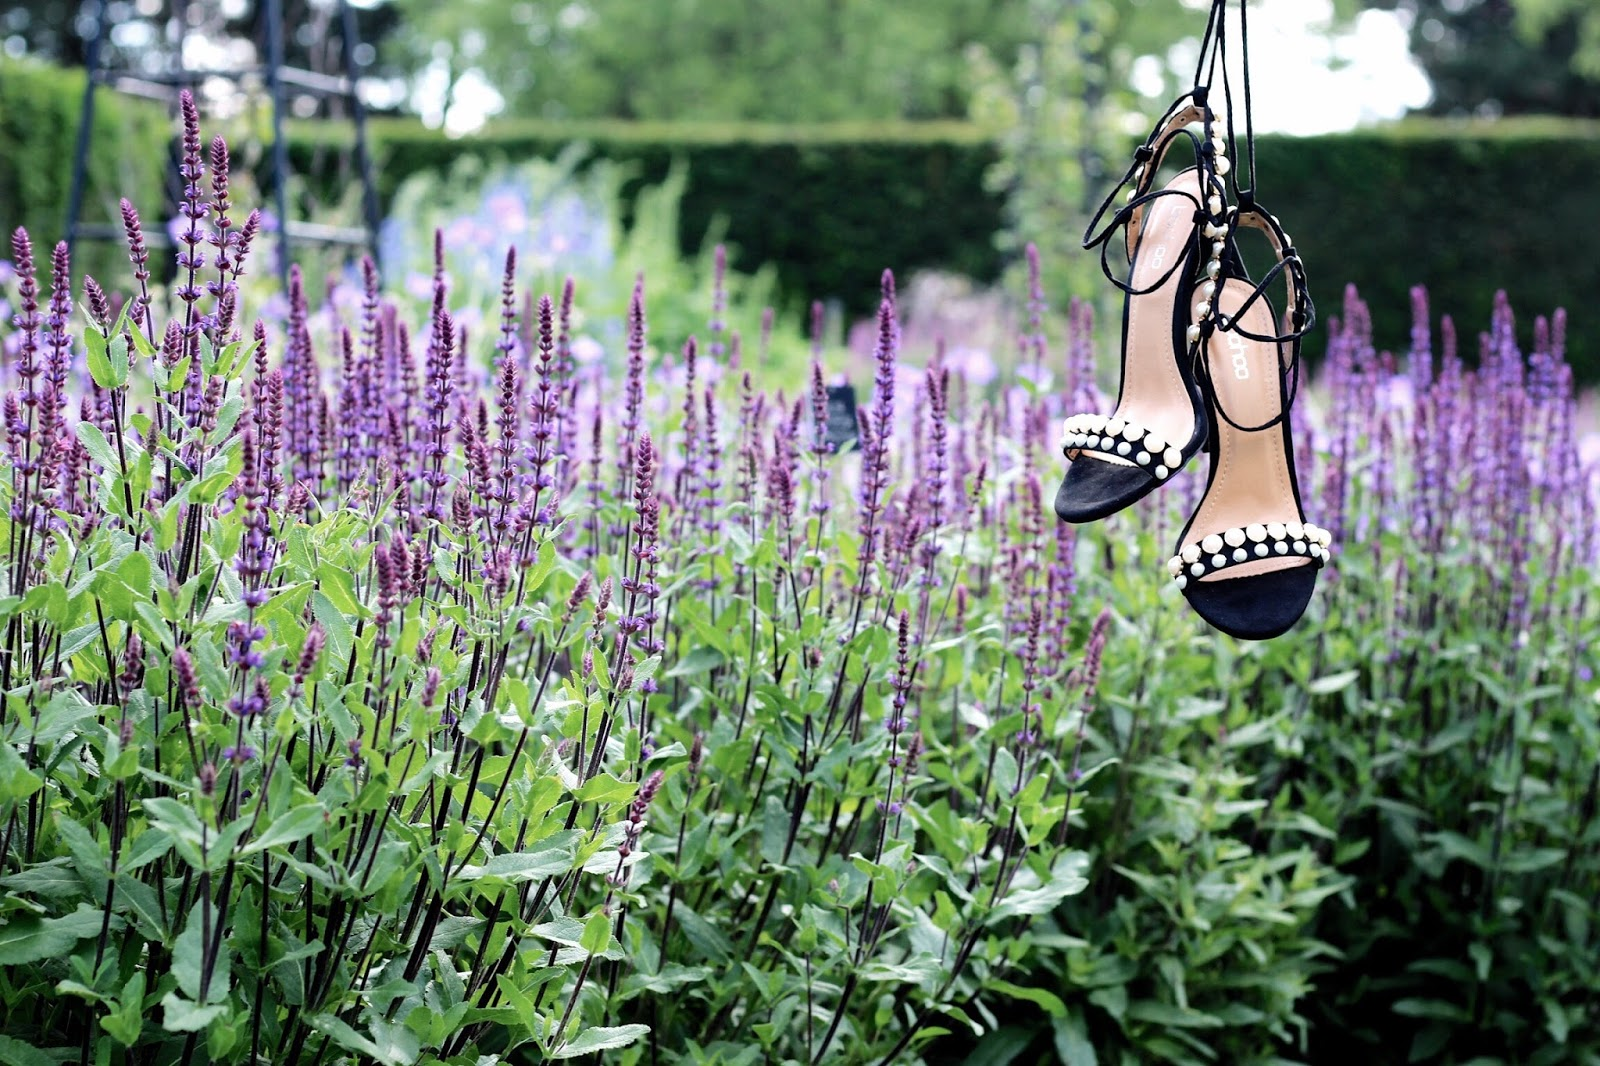 Stilettos hanging over flowers in nature